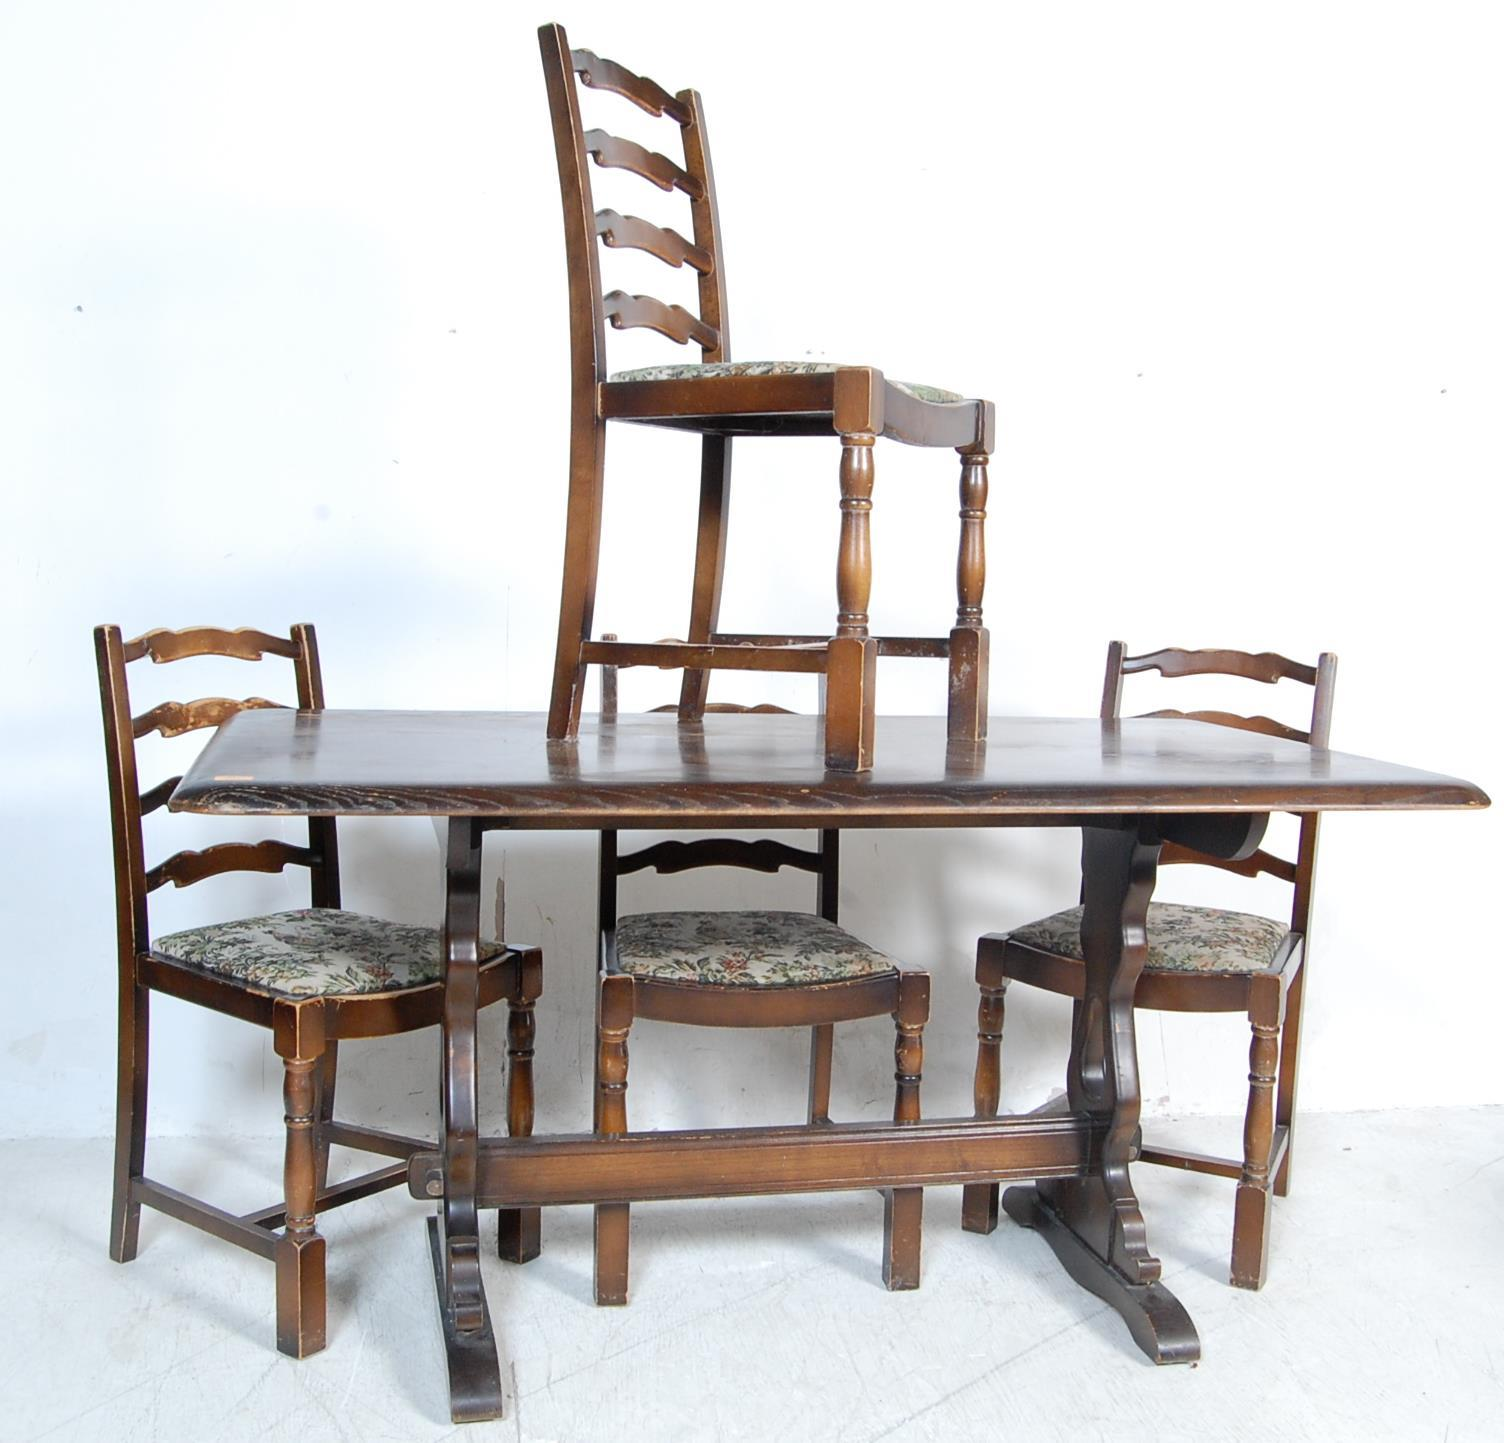 RETRO VINTAGE LATE 20TH CENTURY ERCOL STYLE DINING TABLE AND CHAIRS